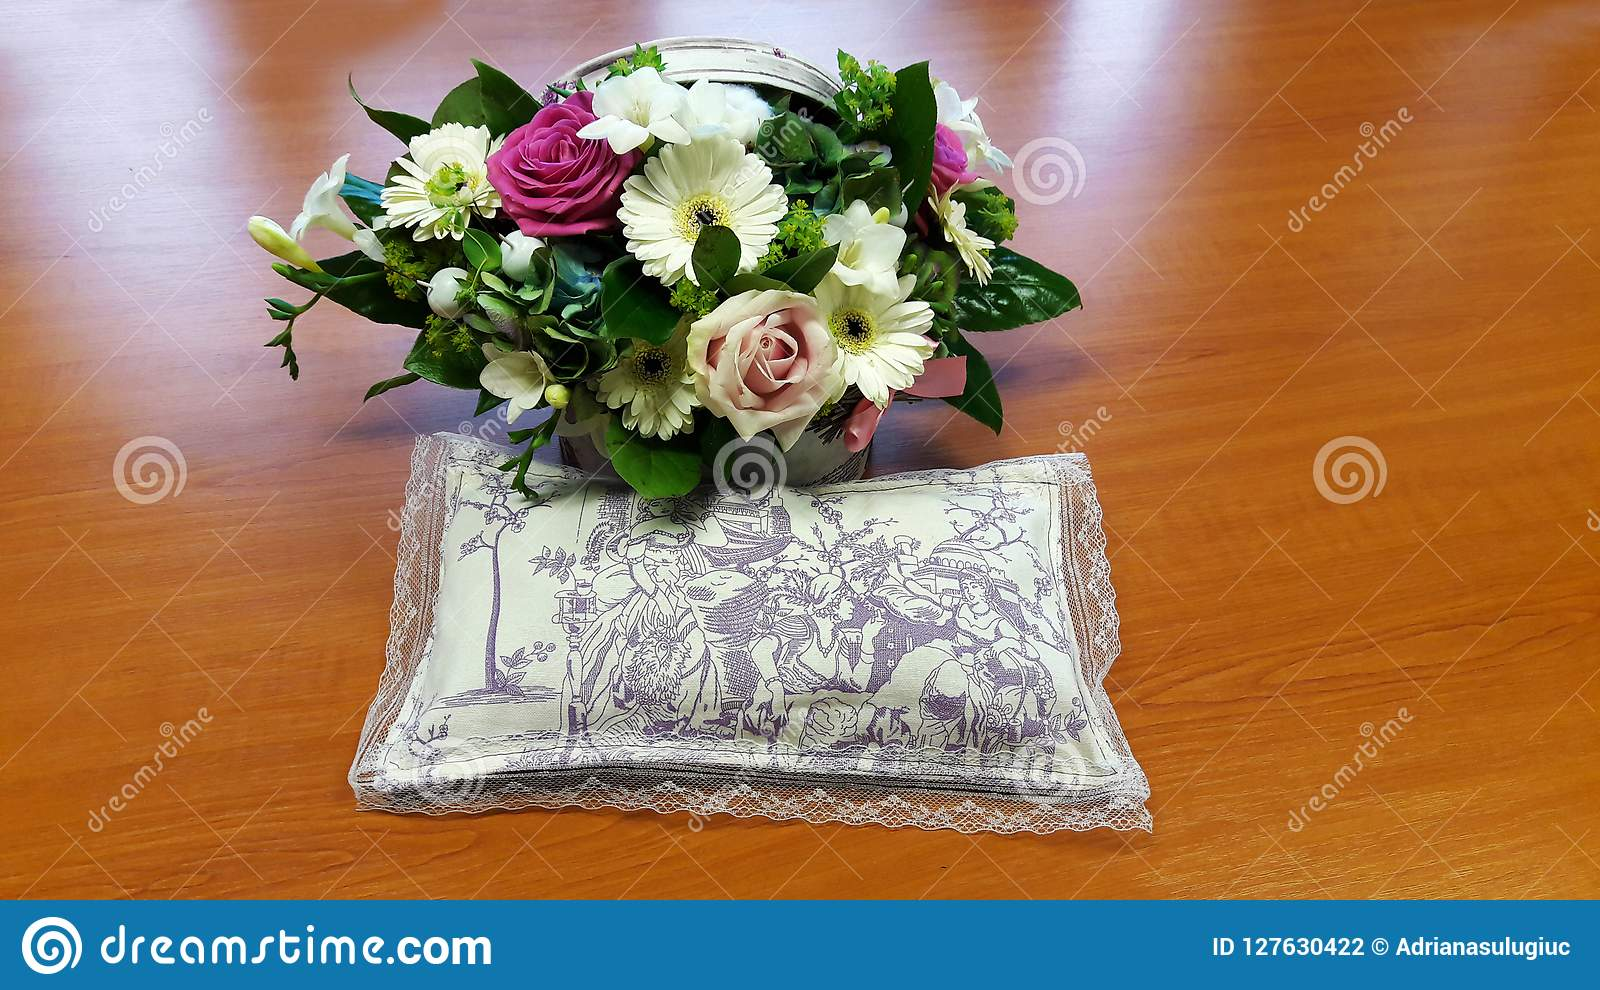 Beautiful bouquet of flowers and a pillow full of lavender